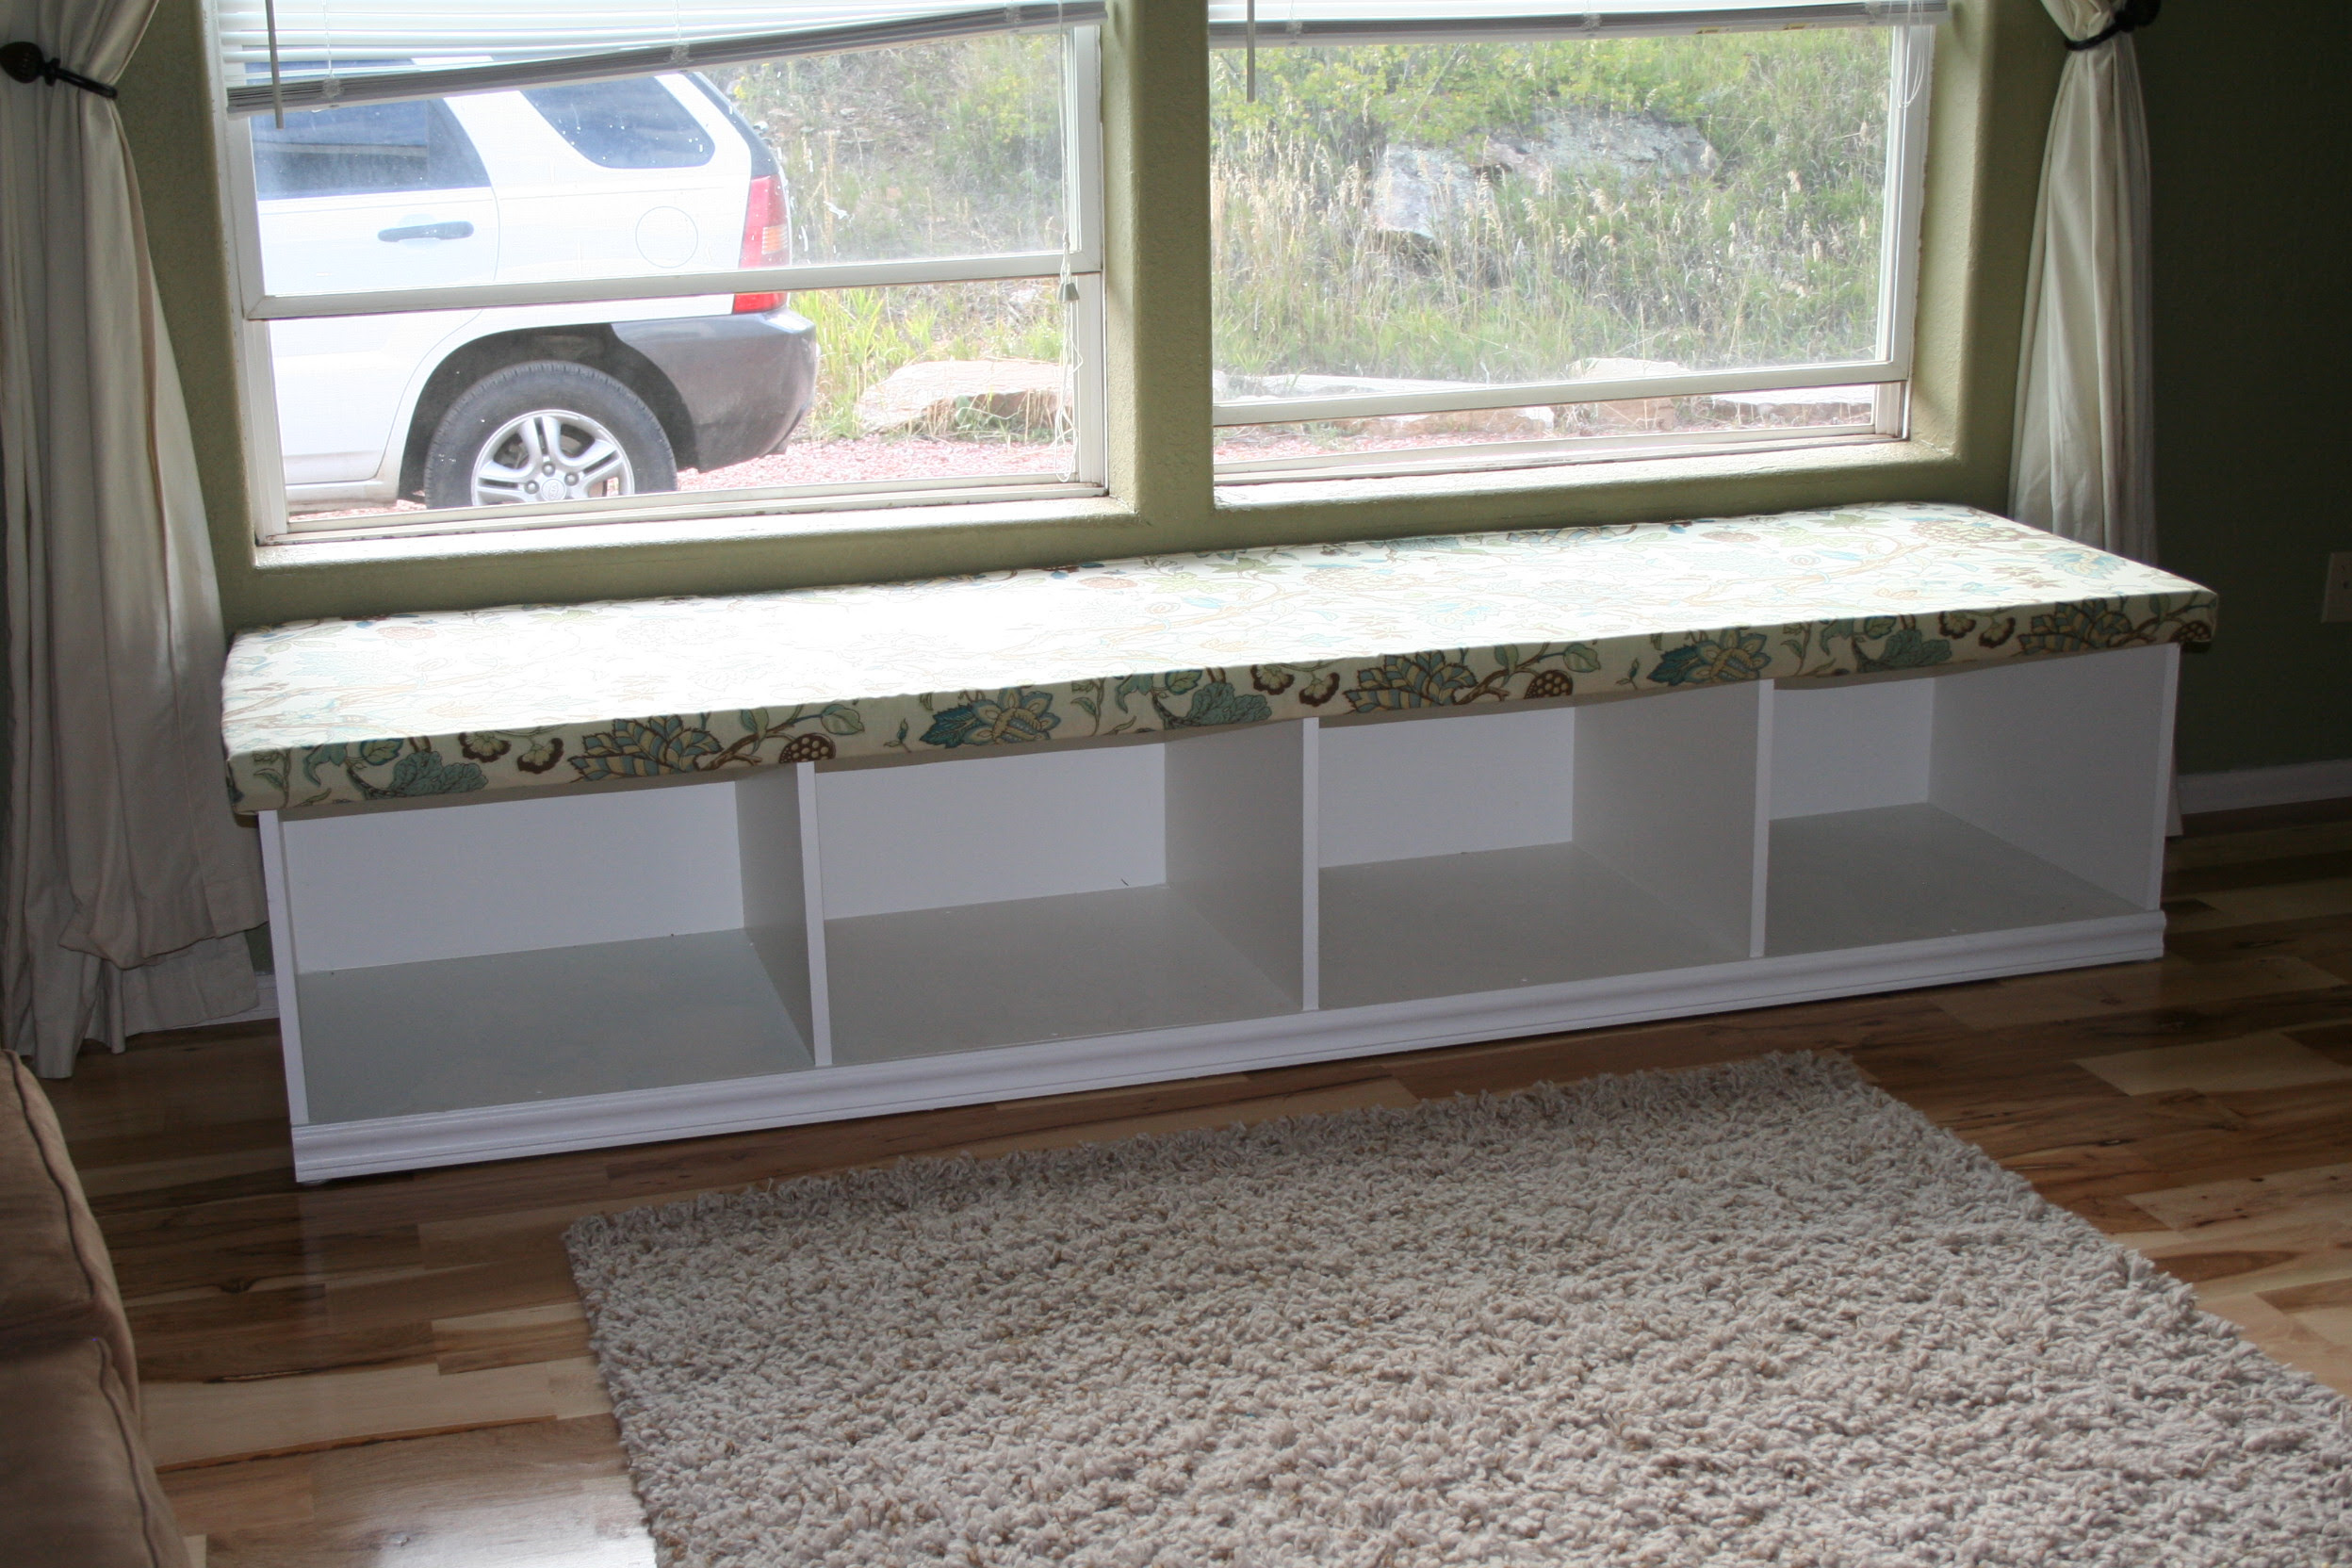 Reveal secrets  Diy Window Bench Seat With Wooden Storage (20)